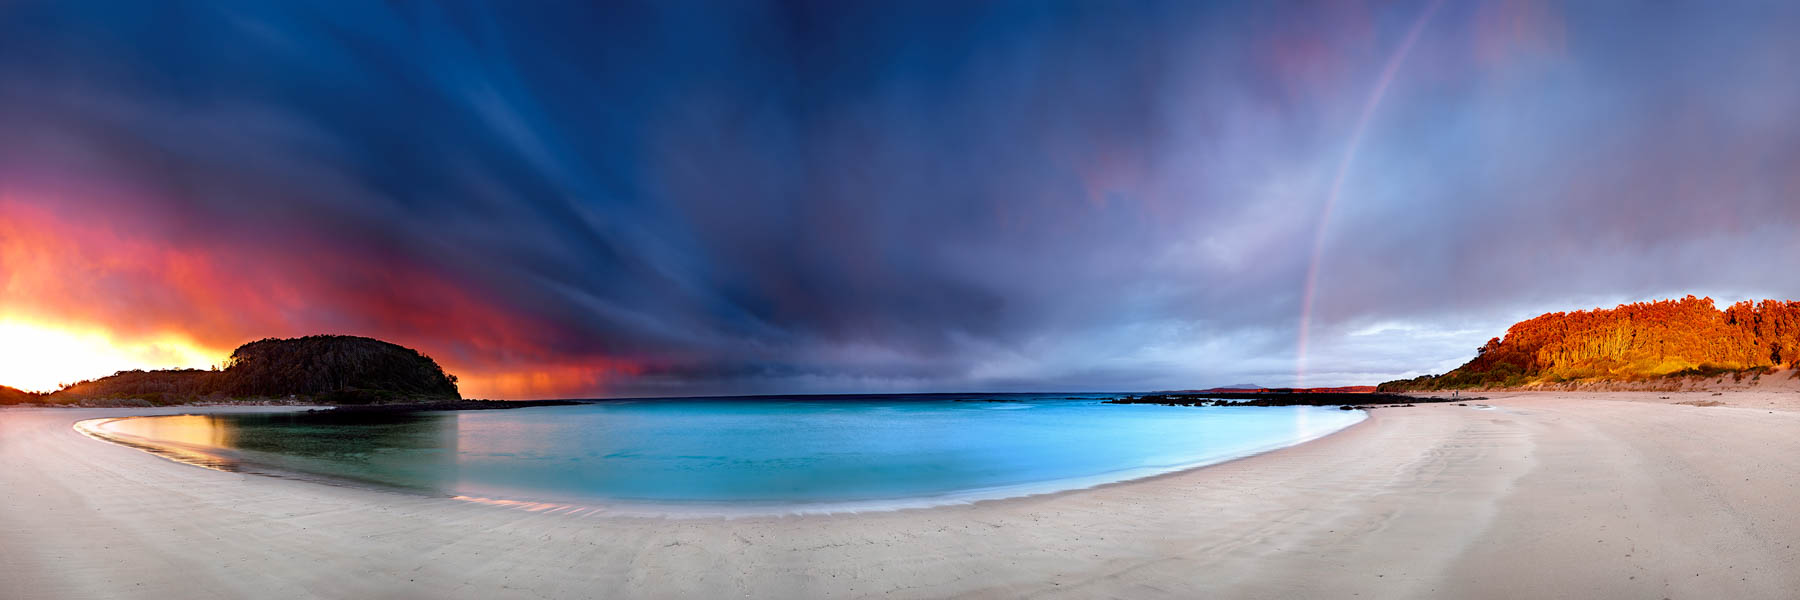 The calm before the storm, Shark Bay, NSW, Australia.